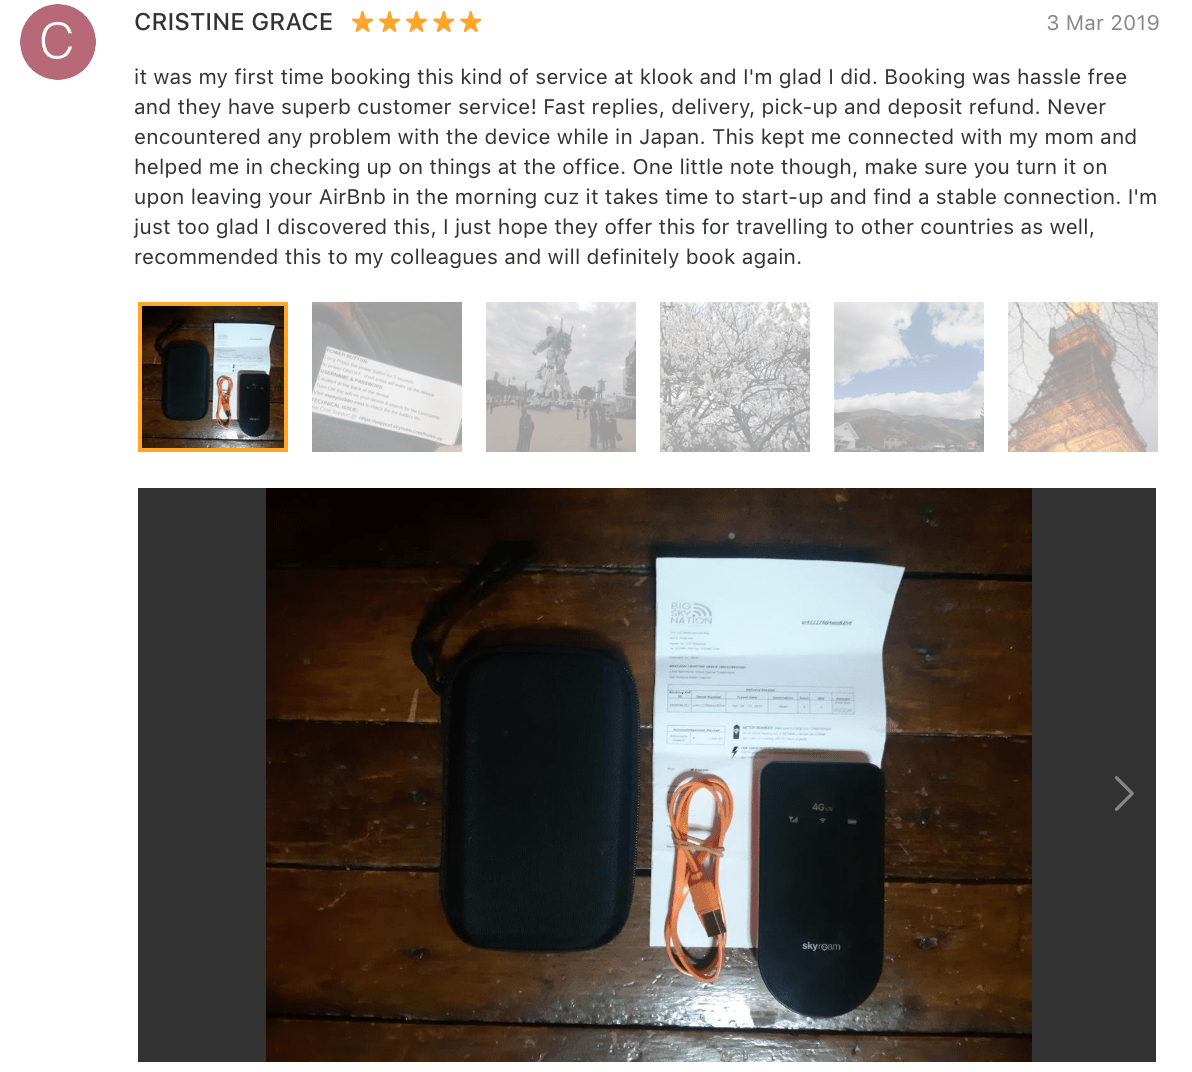 '[It'] was my first time booking this kind of service… Booking was hassle free… Fast replies, delivery, pick-up and deposit refund. Never encountered any problem with the device while in Japan…' - Japan Pocket Wifi review (Klook customer)